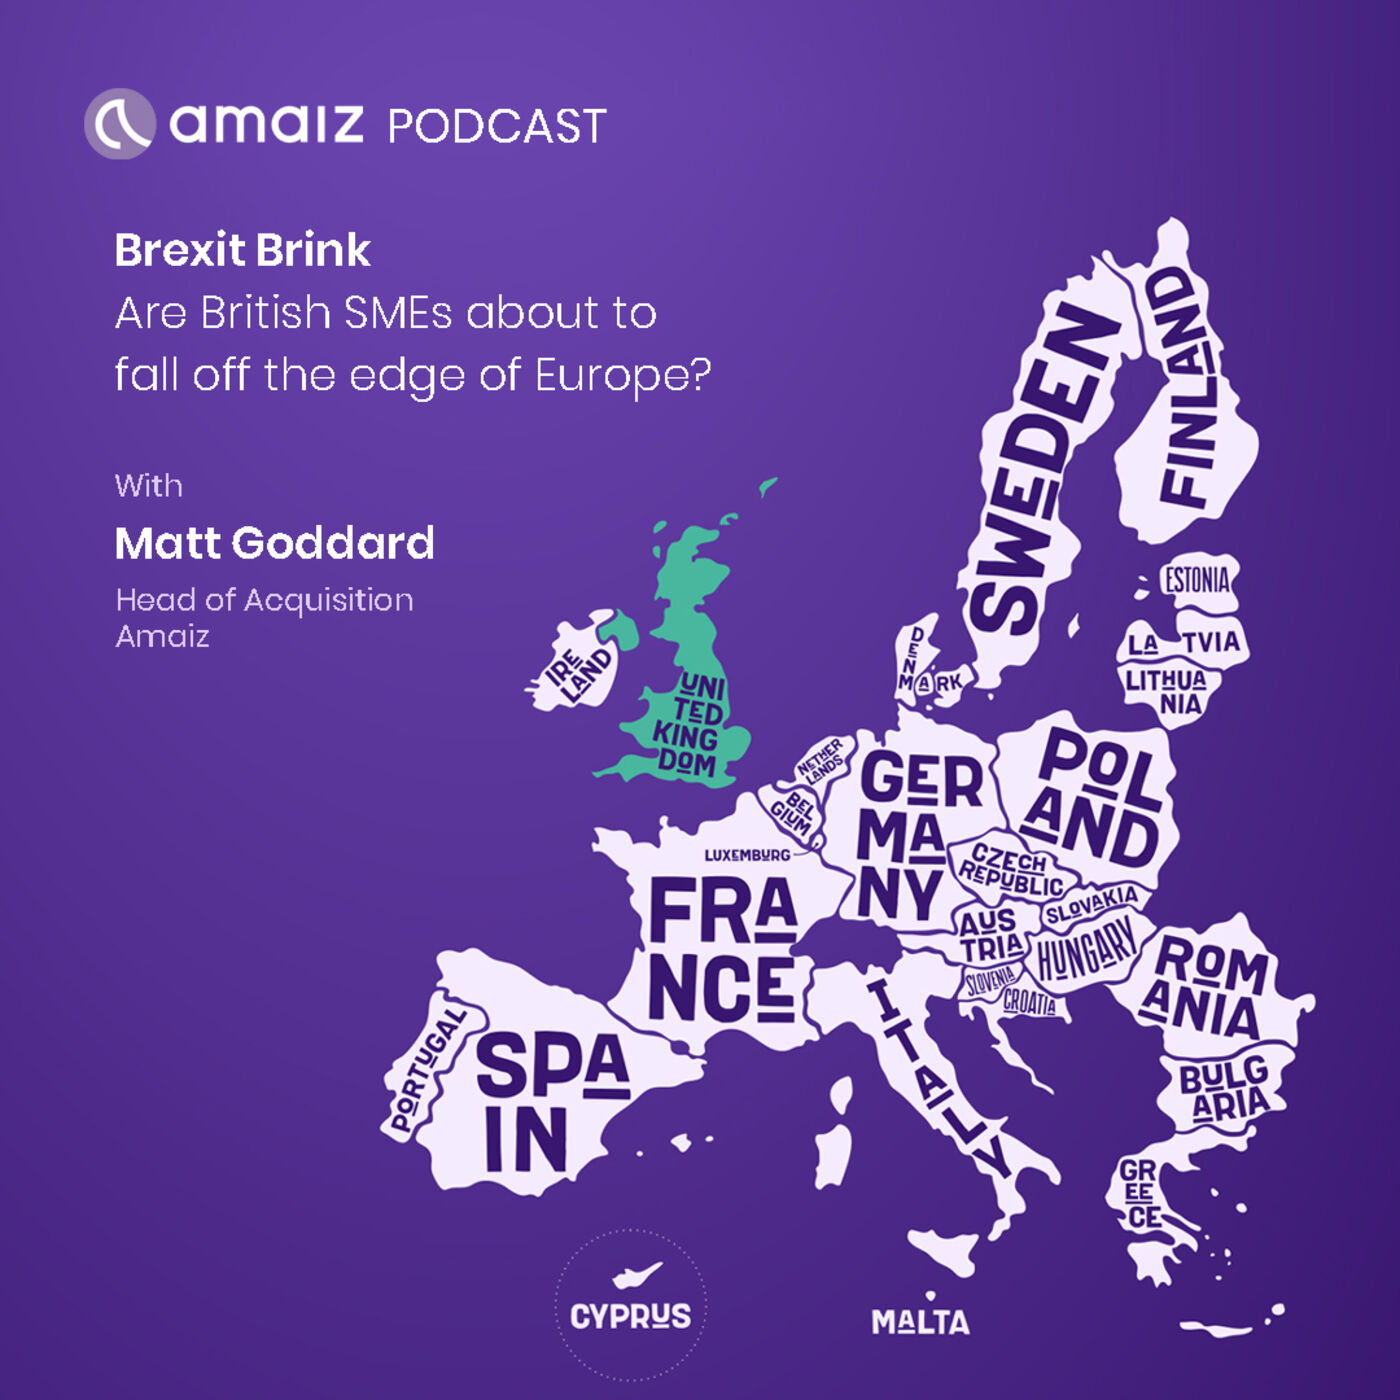 The Brexit Brink! Introducing the new Amaiz report on UK business and Brexit